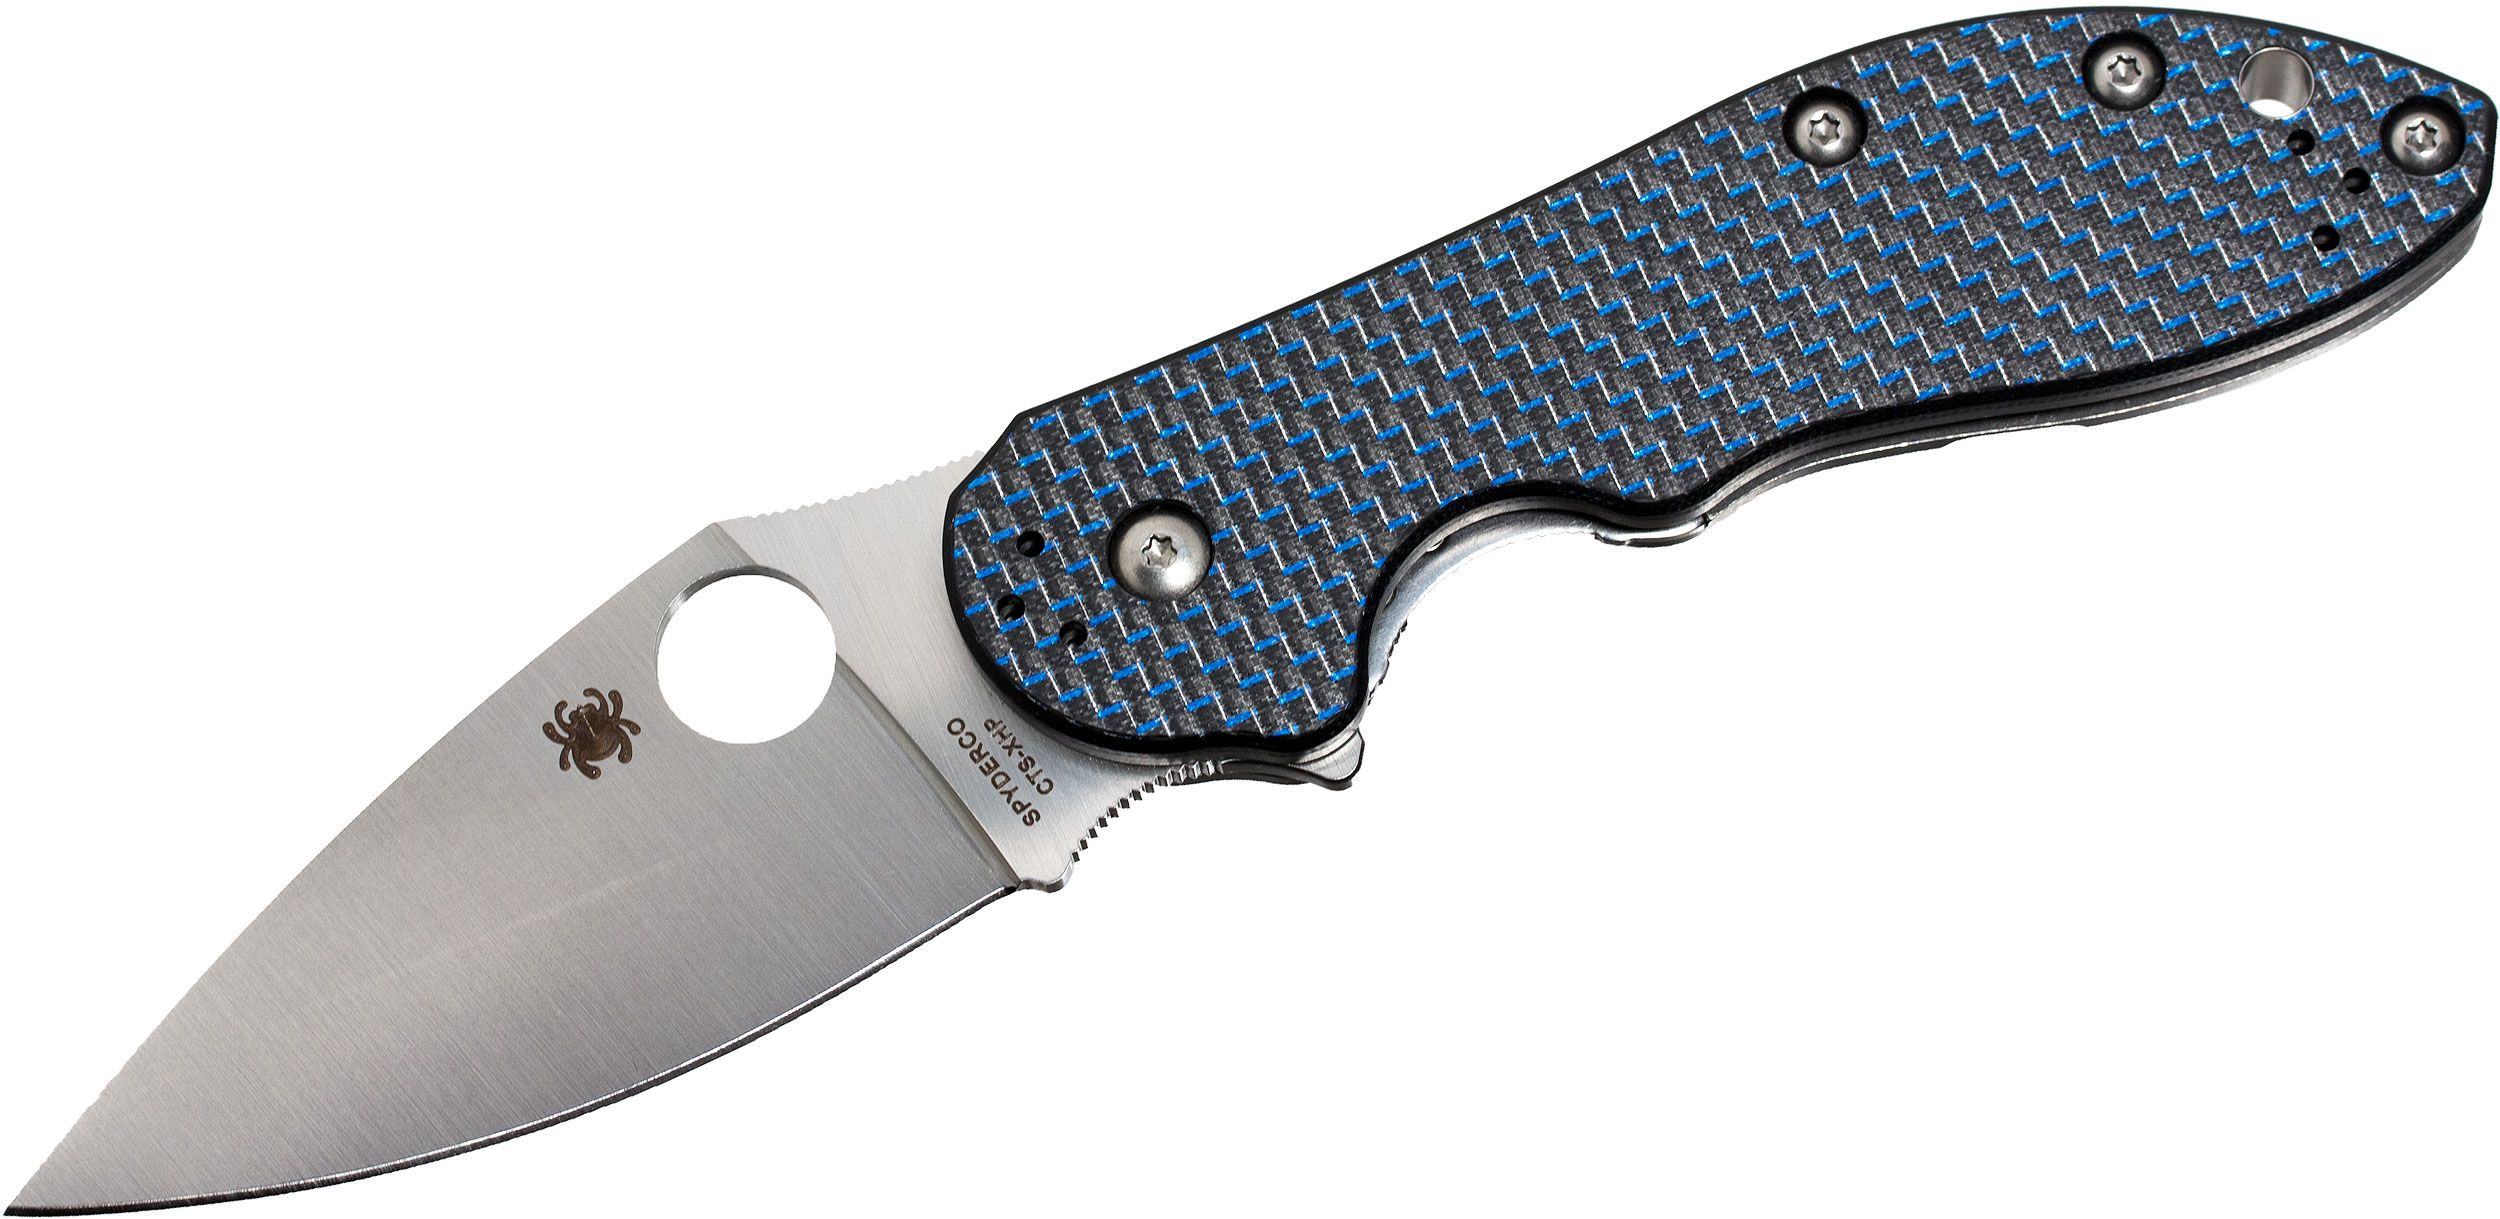 Spyderco Domino Flipper Knife 3.13 inch CTS-XHP Blade, Blue Weave Carbon Fiber and Titanium Handles